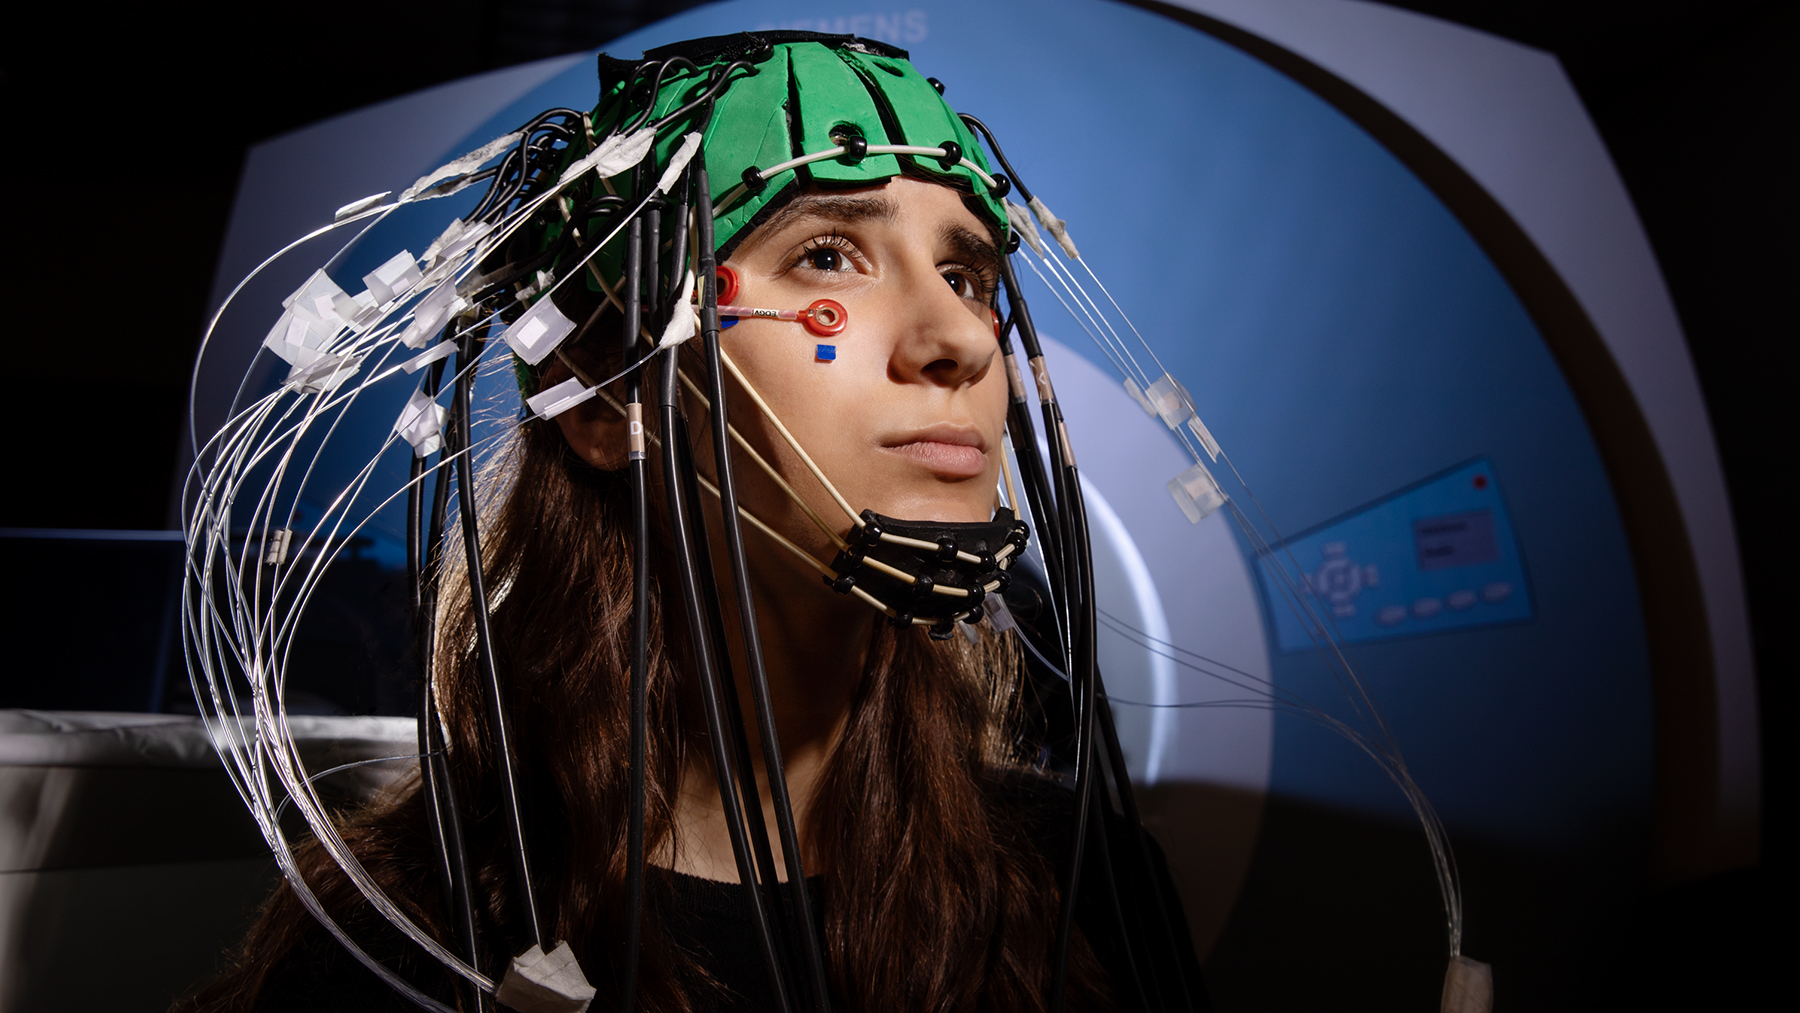 A young woman inside an MRI suite wears an imaging cap with many sensors attached.